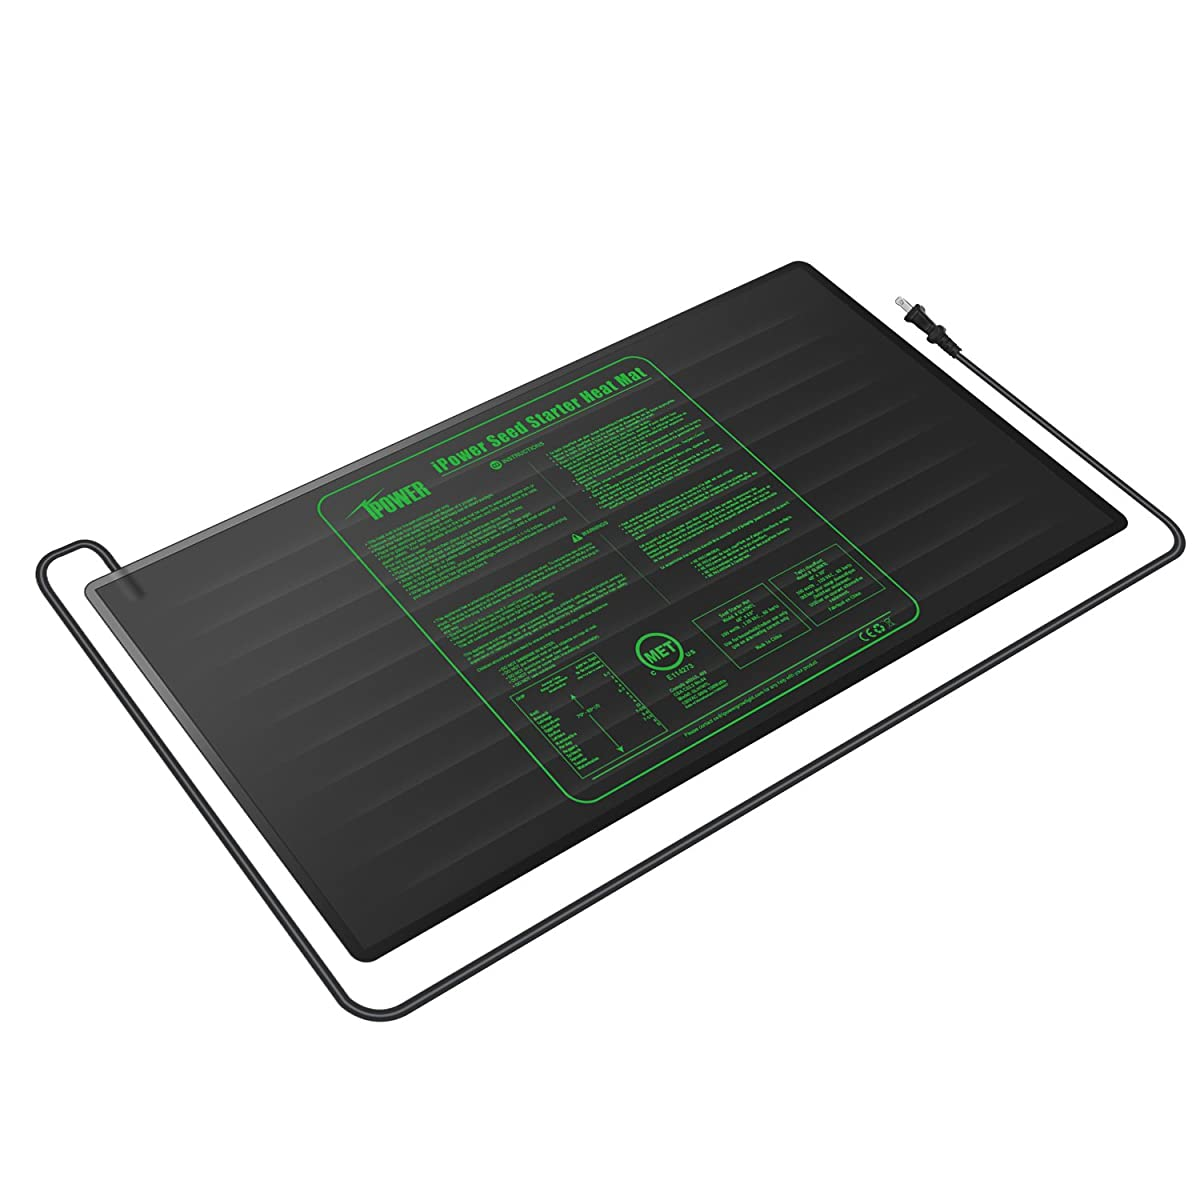 """iPower Large Seedling Heat Mat 48"""" x 20"""" Warm Hydroponic Heating Pad with Durable Waterproof Design"""